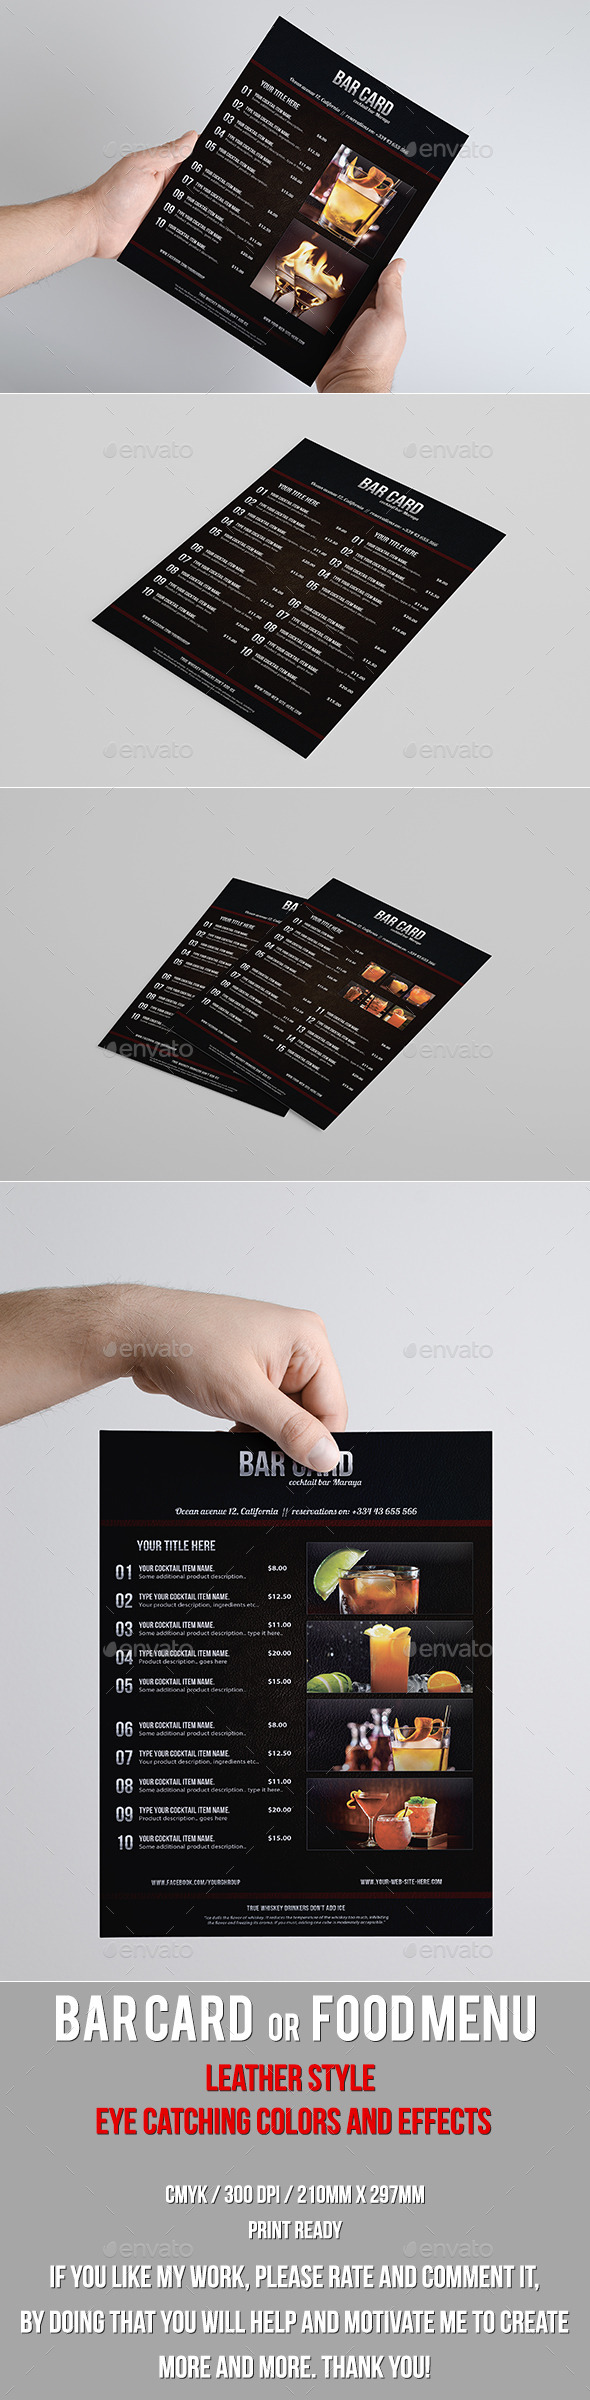 GraphicRiver Leather Style Bar Card or Food Menu 10110474